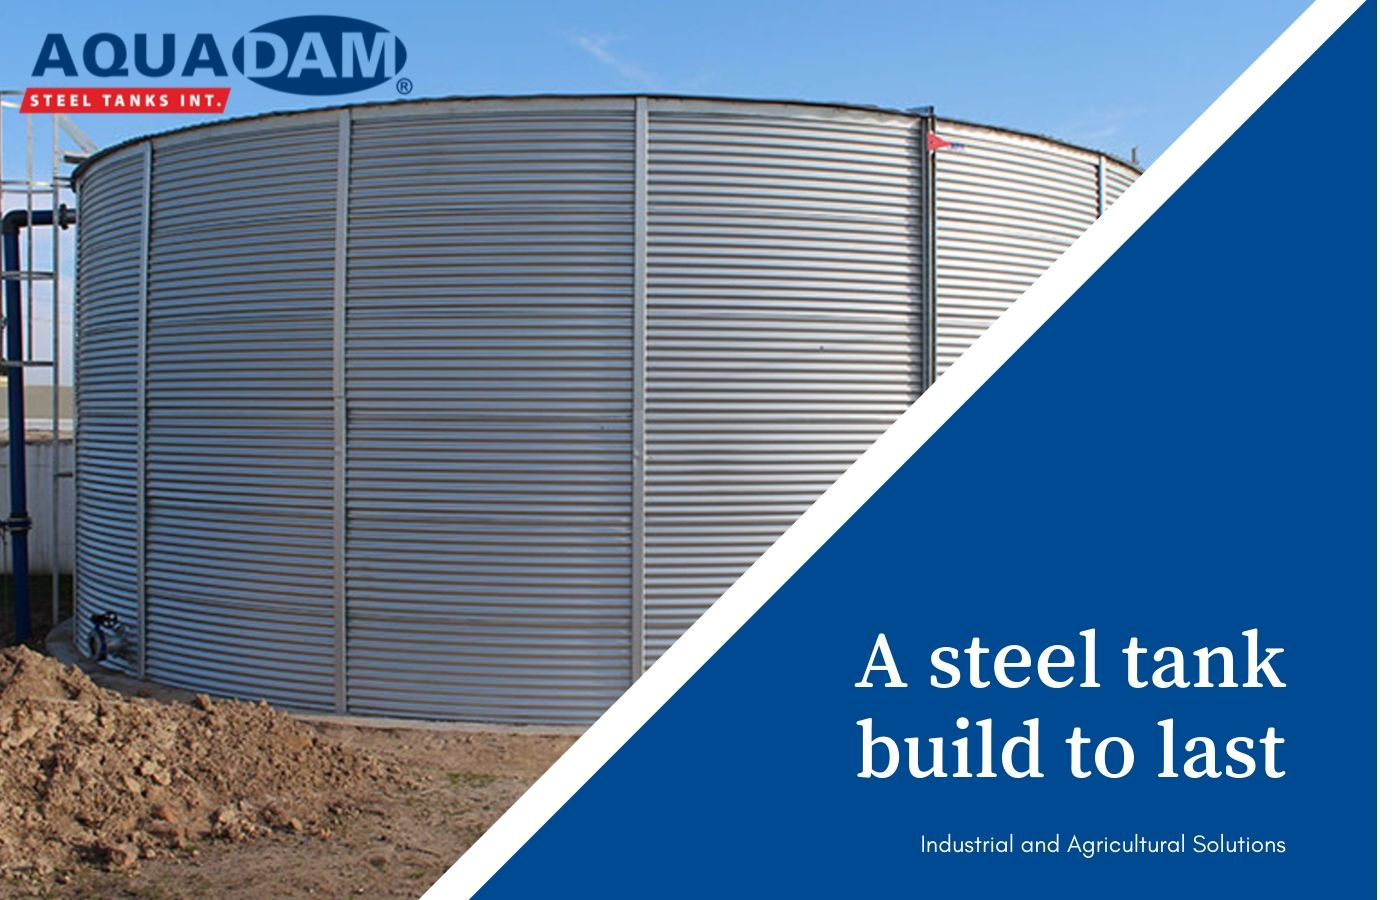 A steel tank built to last